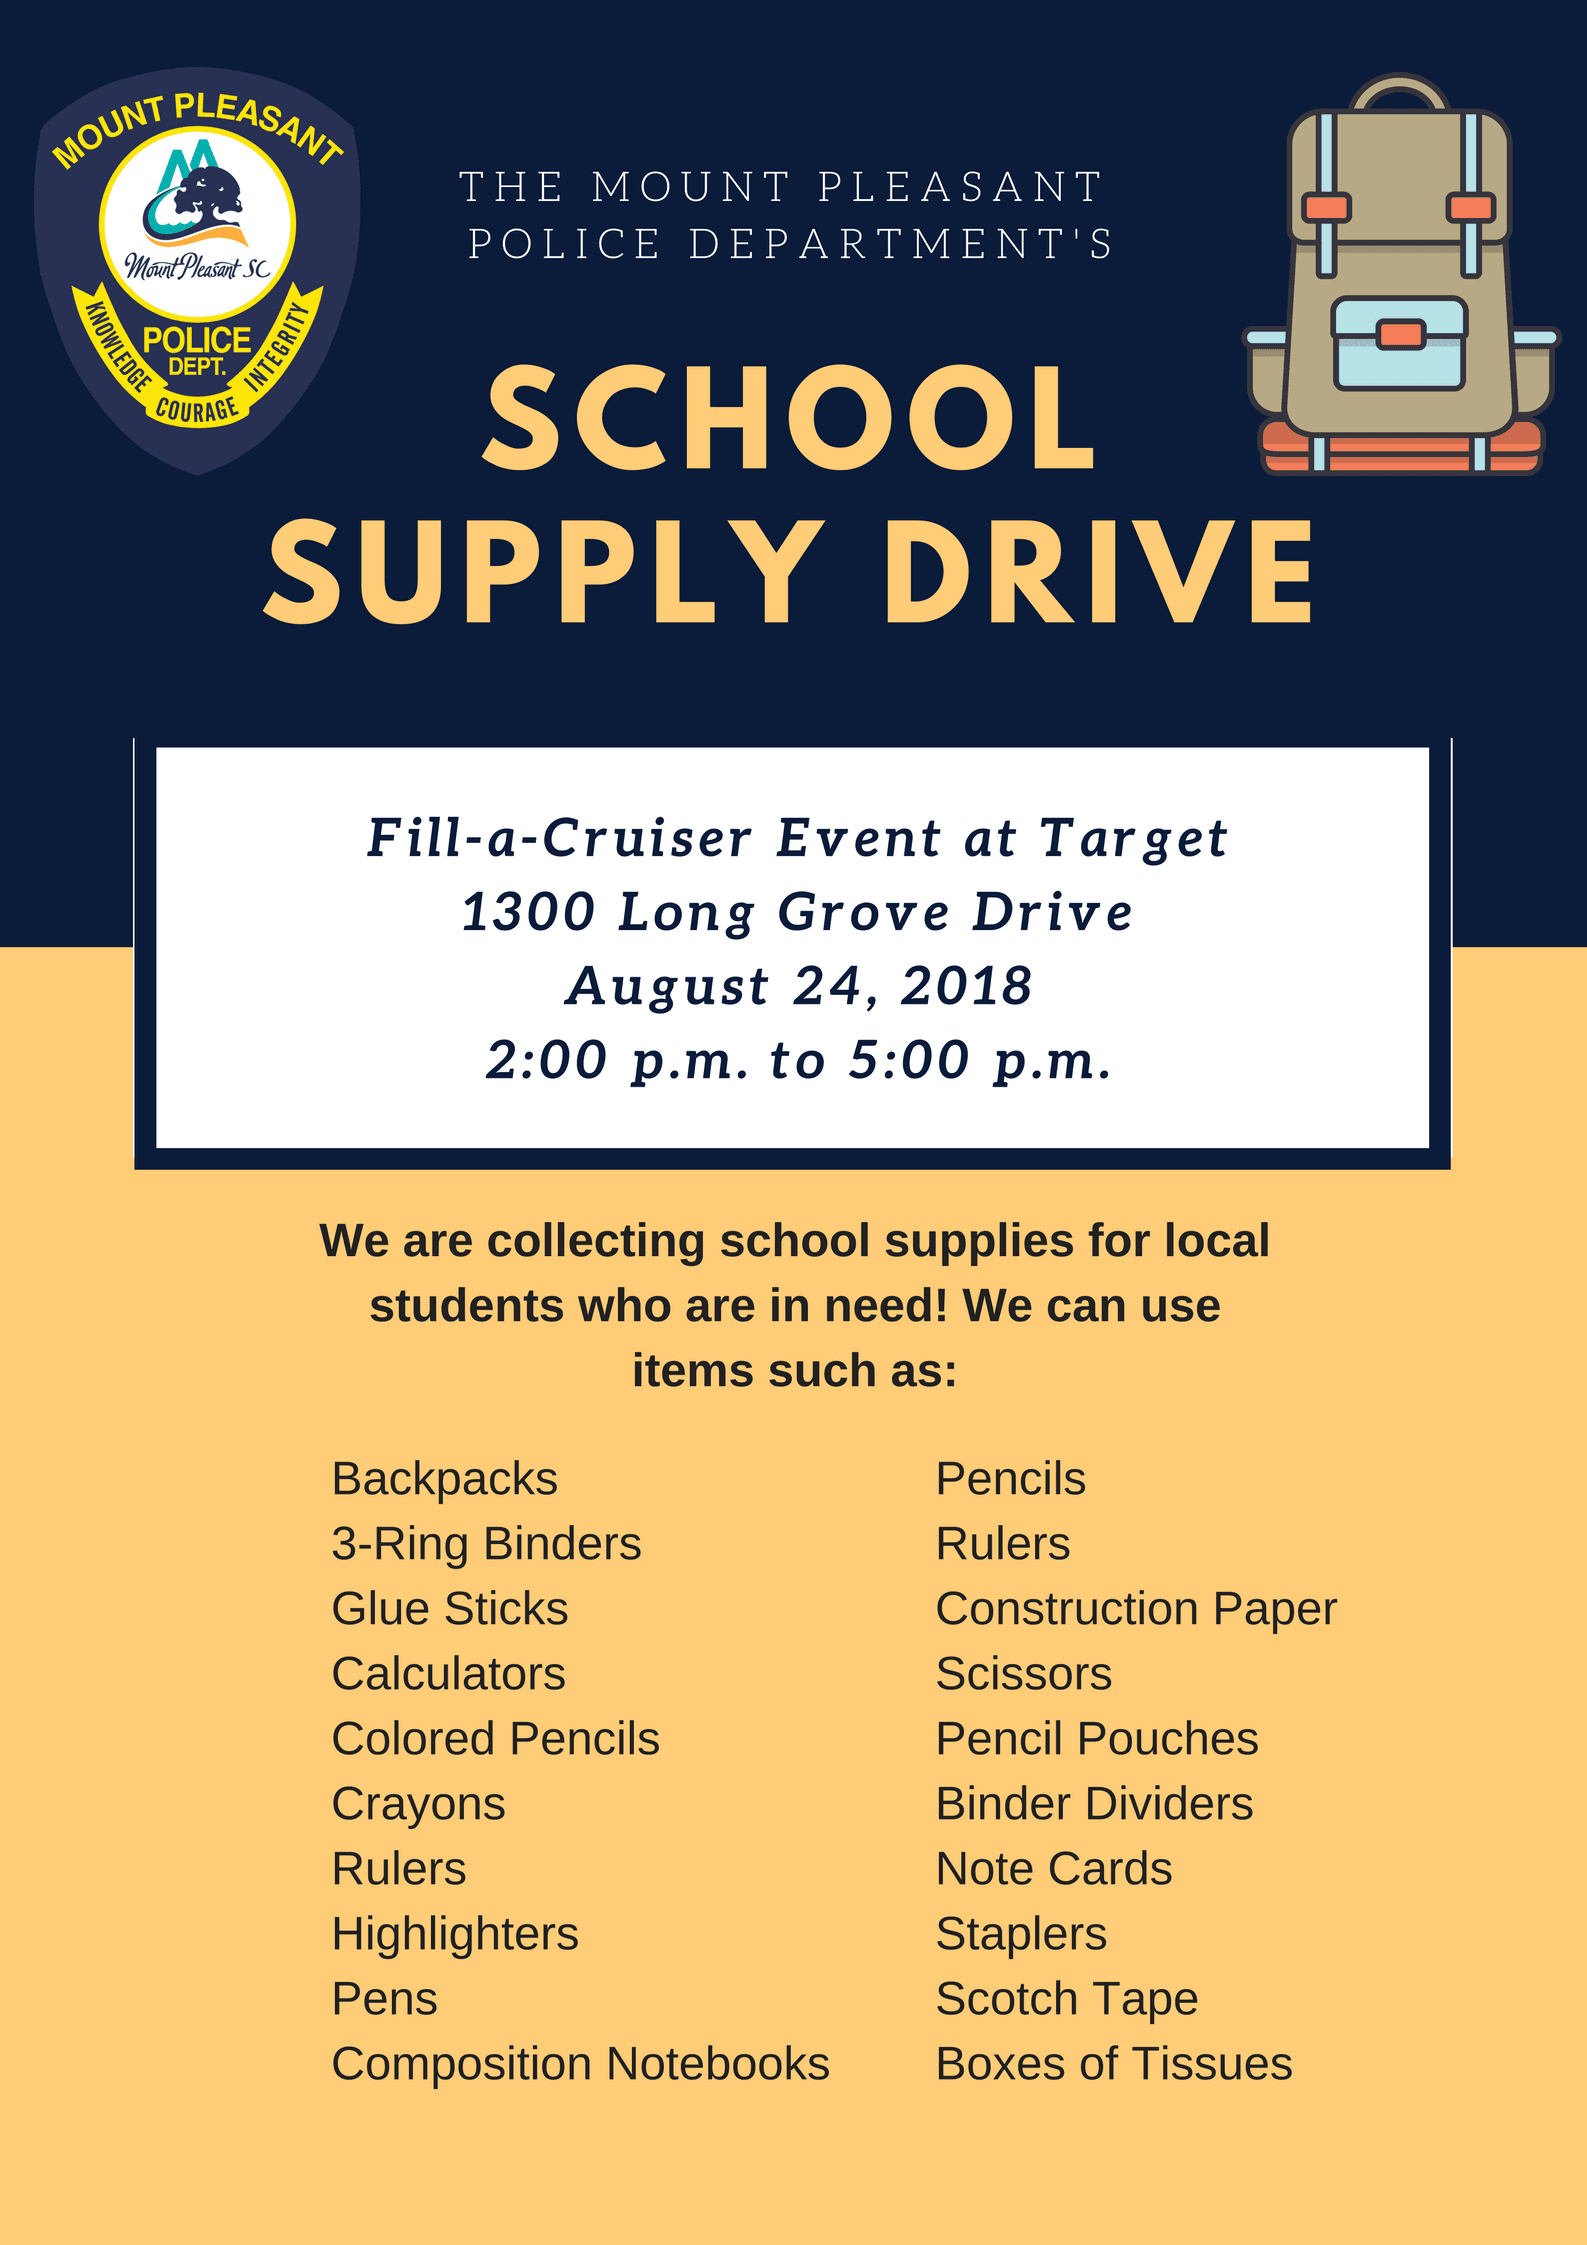 a1dcaf15a78 082418 School Supply drive Target